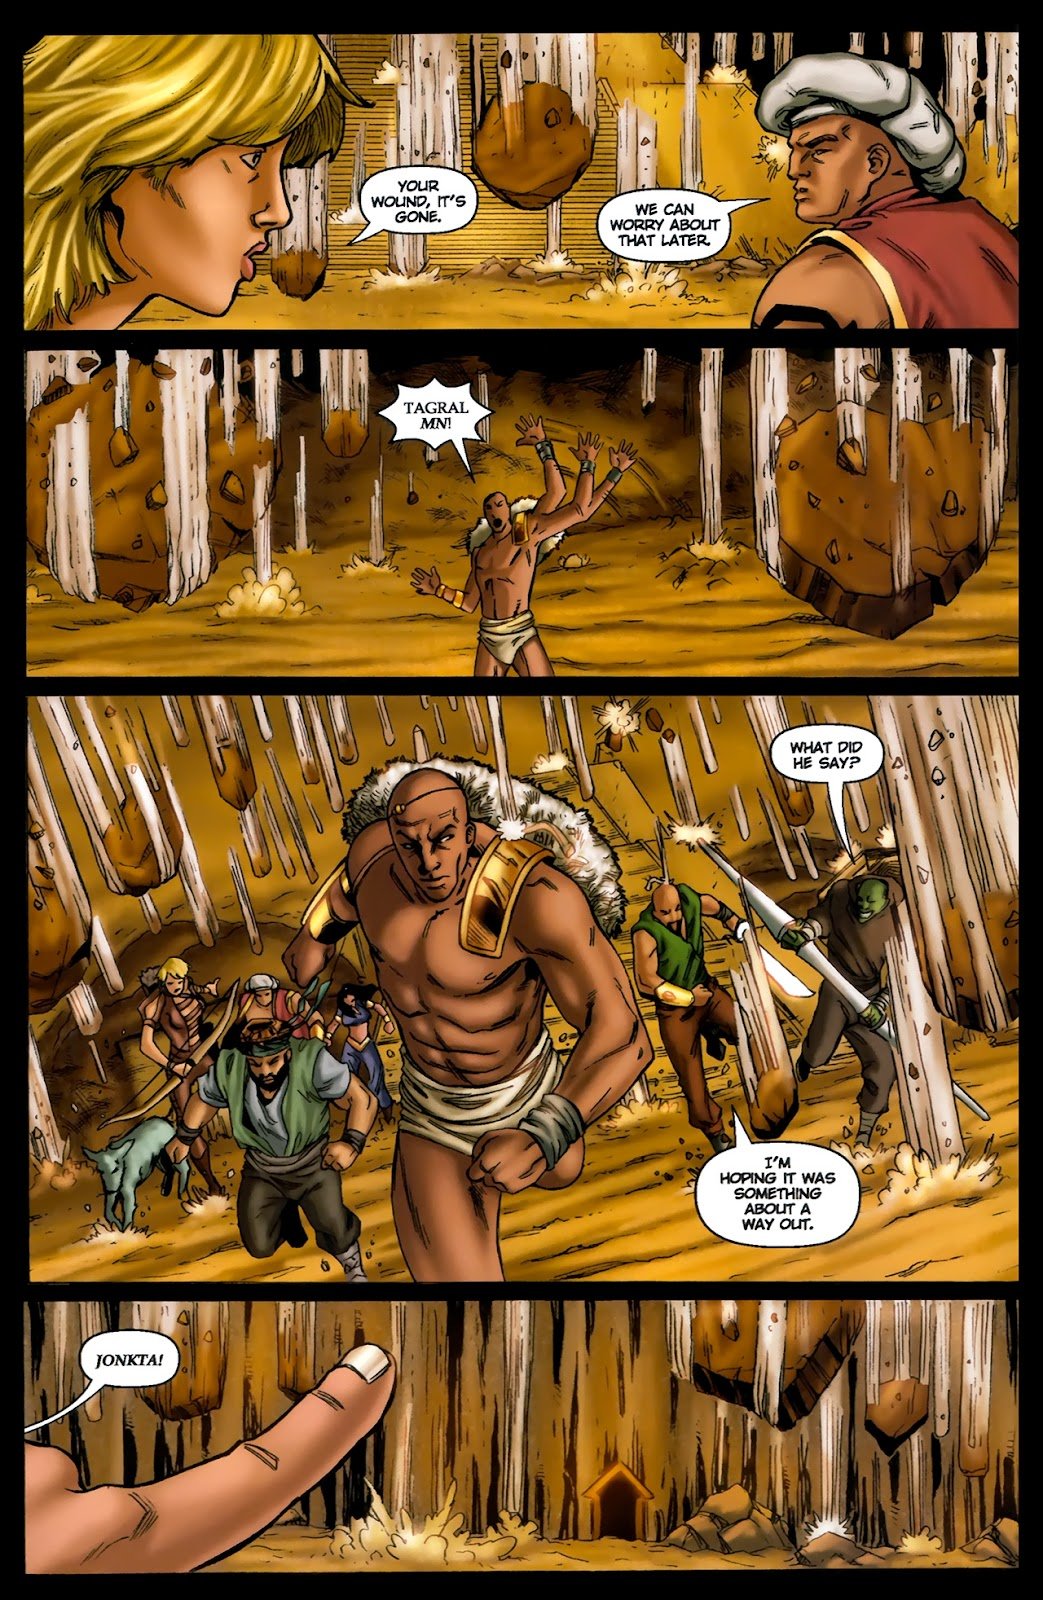 1001 Arabian Nights: The Adventures of Sinbad Issue #13 Page 21